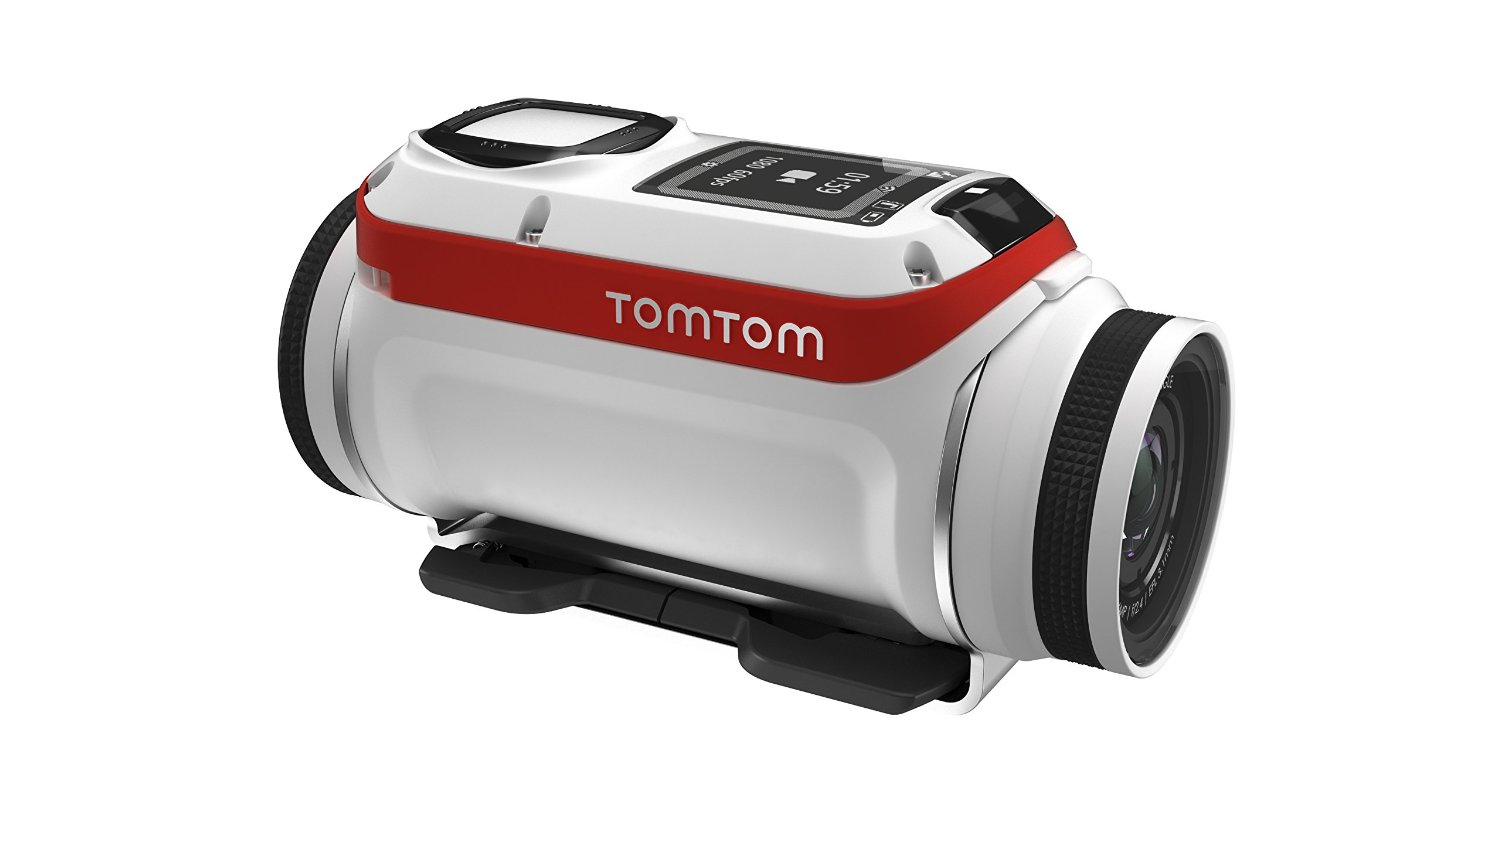 TomTom Action Kamera Test